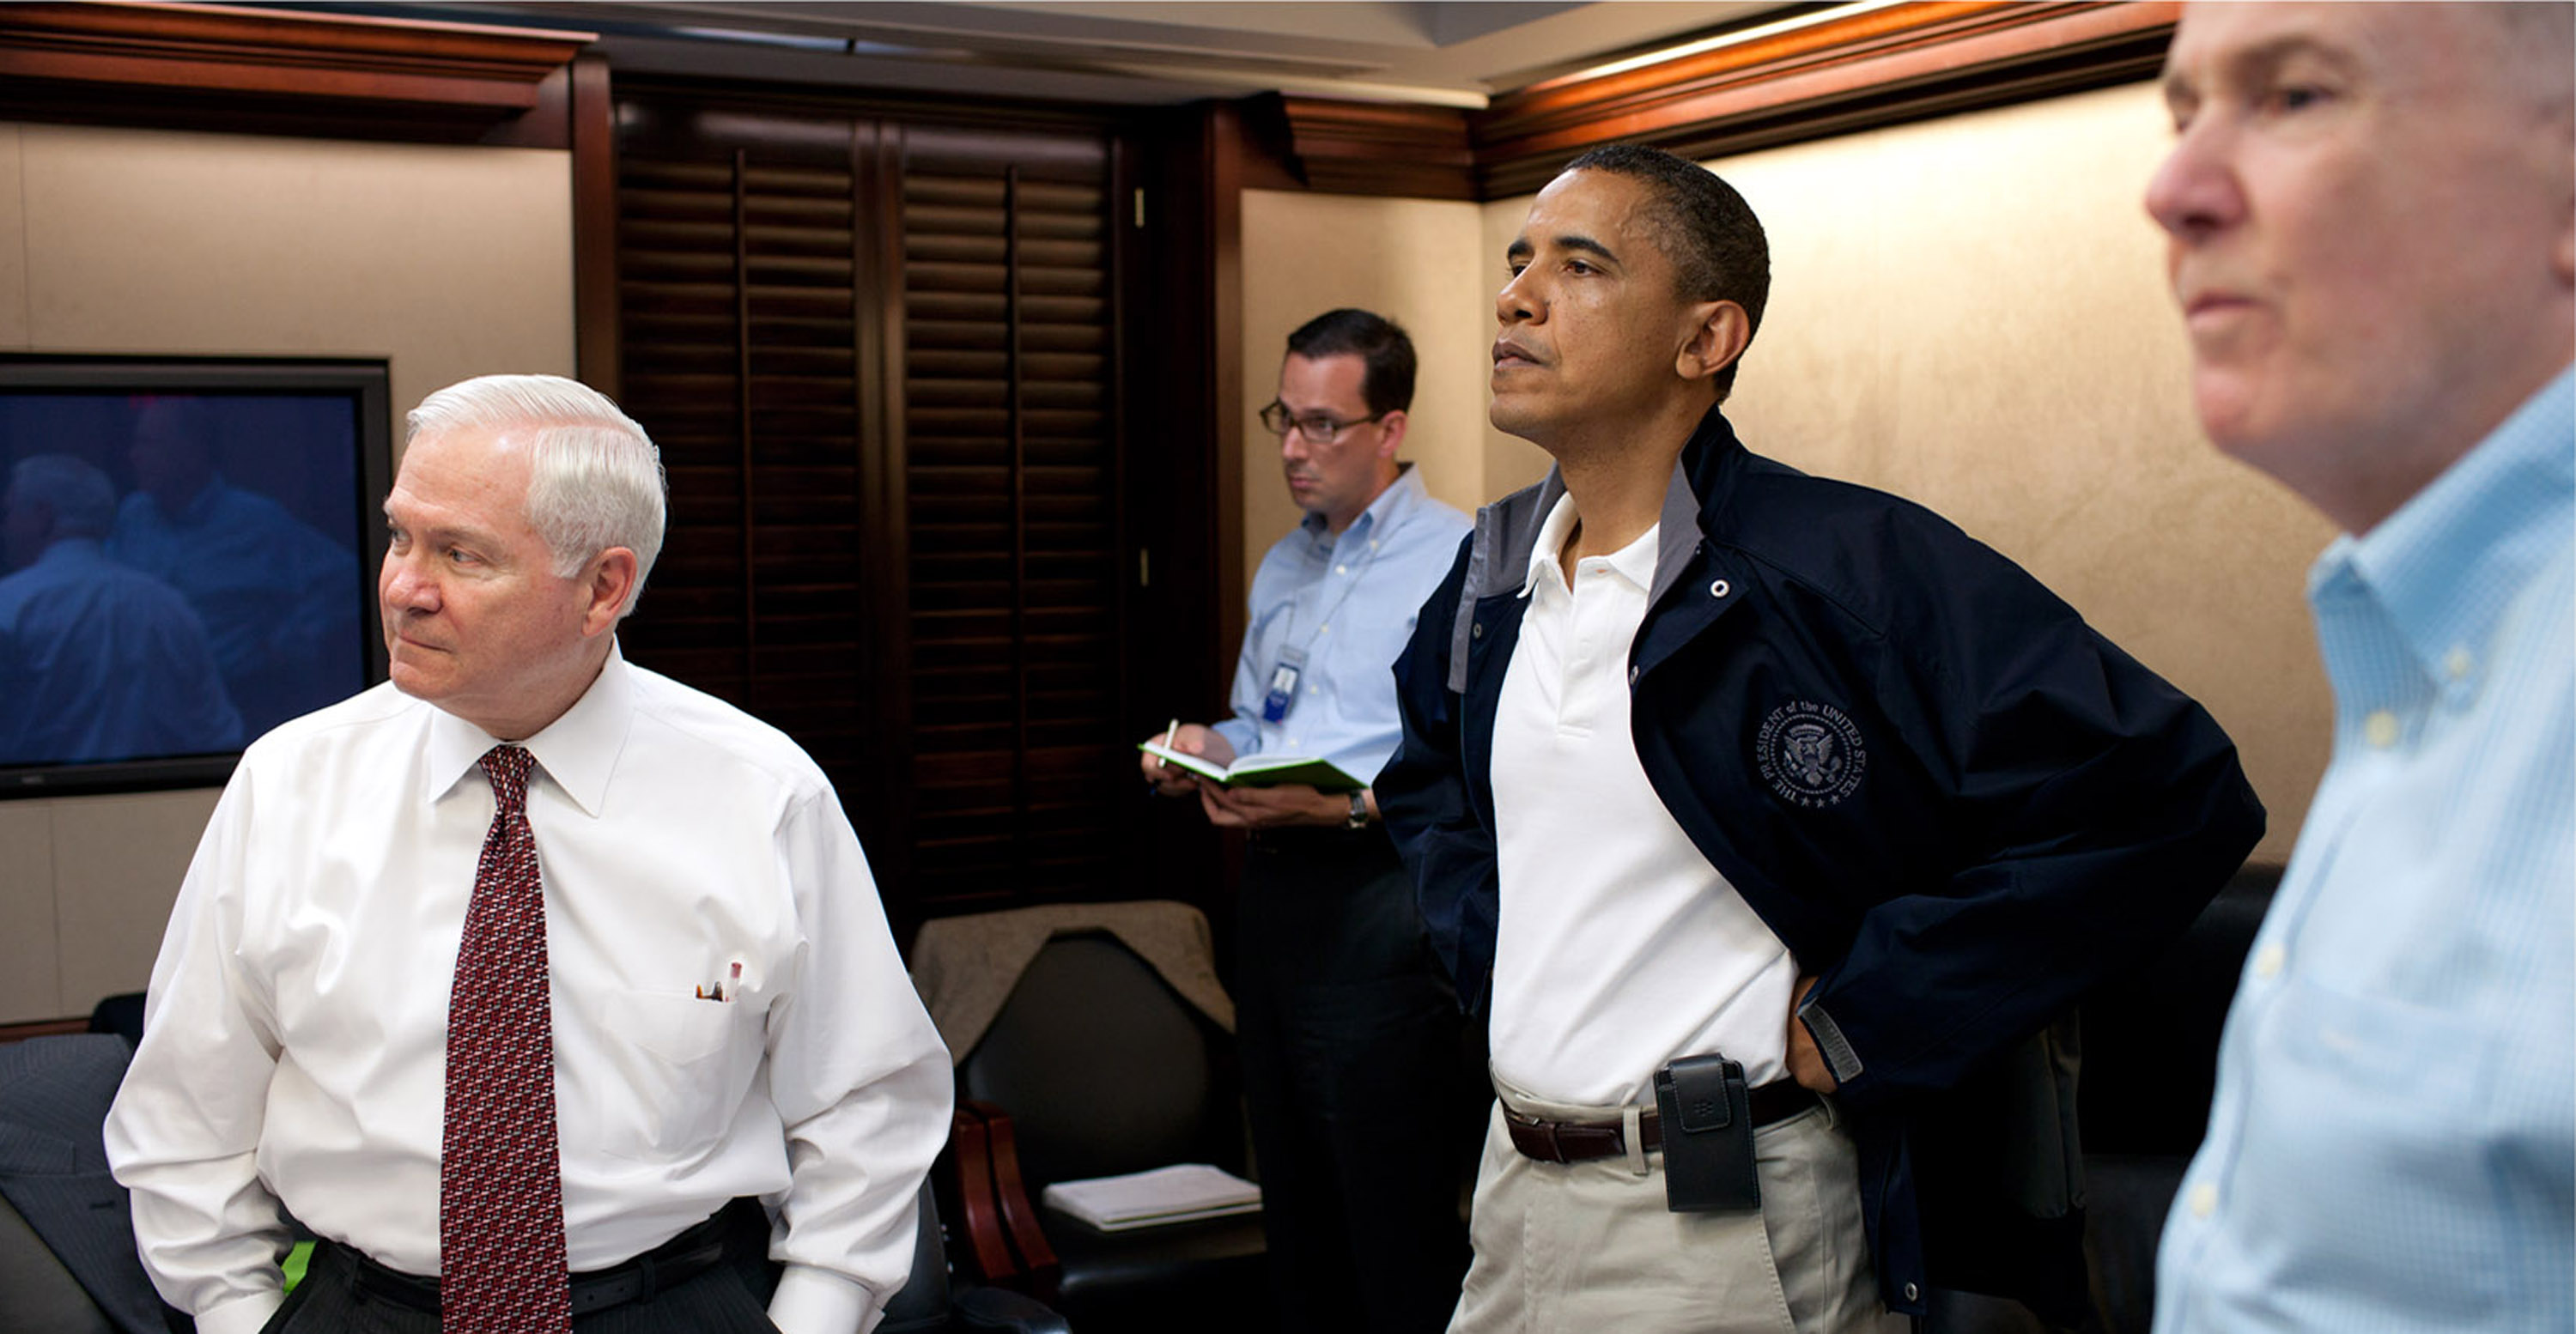 Secretary of Defense Robert Gates (L), President Barack Obama (2nd-R) and National Security Advisor Tom Donilon (R) attend a meeting in the Situation Room on May 1, 2012 in Washington, D.C., to discusss Osama bin Laden.